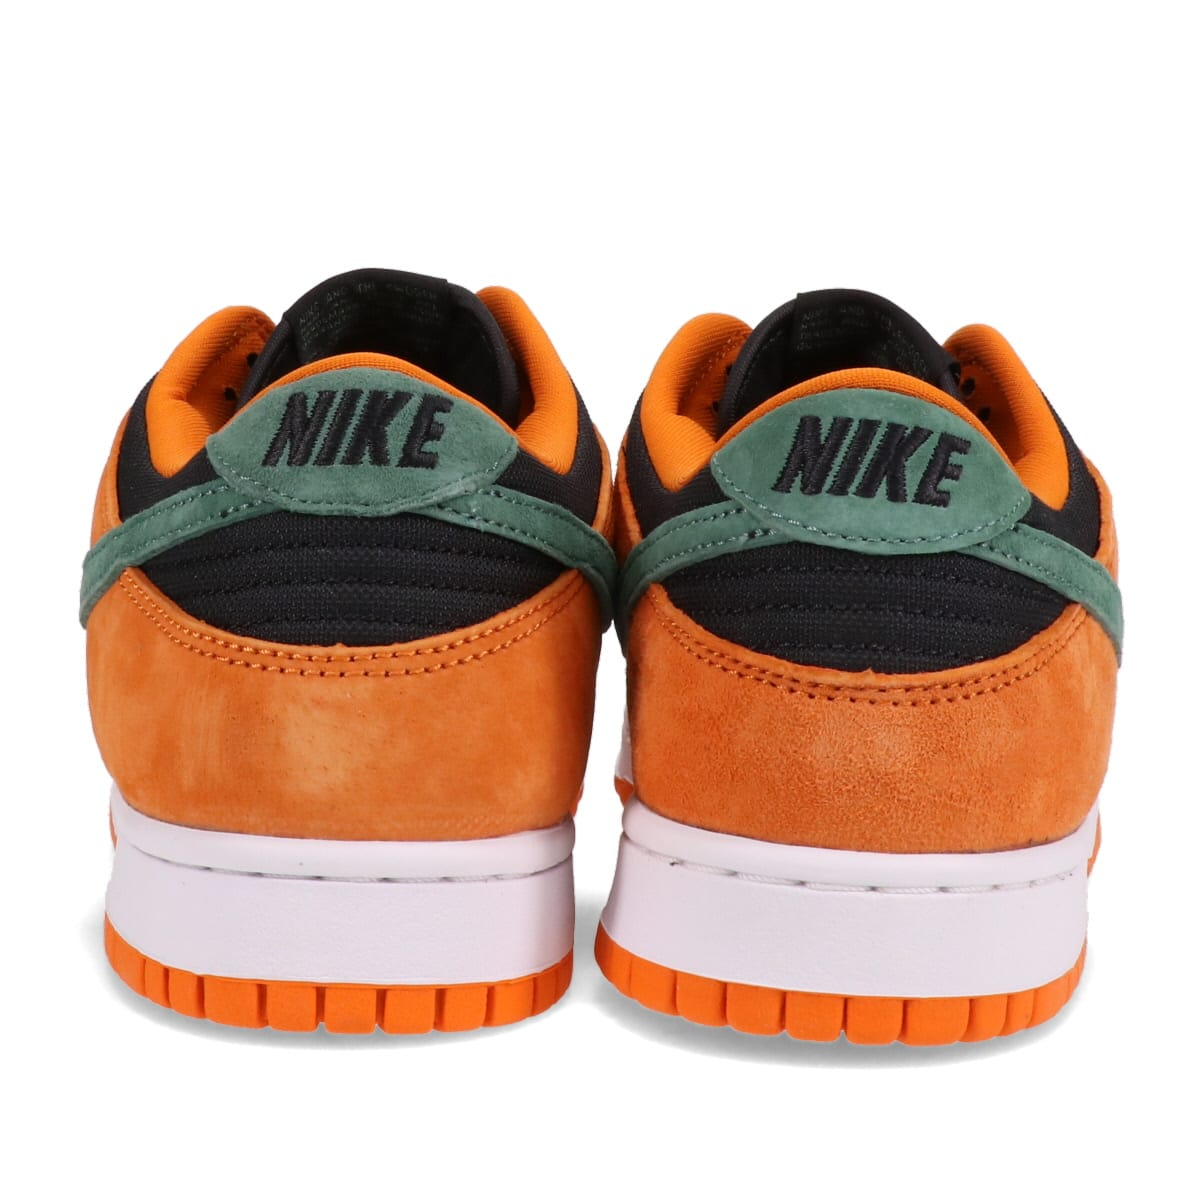 NIKE DUNK LOW SP 20FW-S